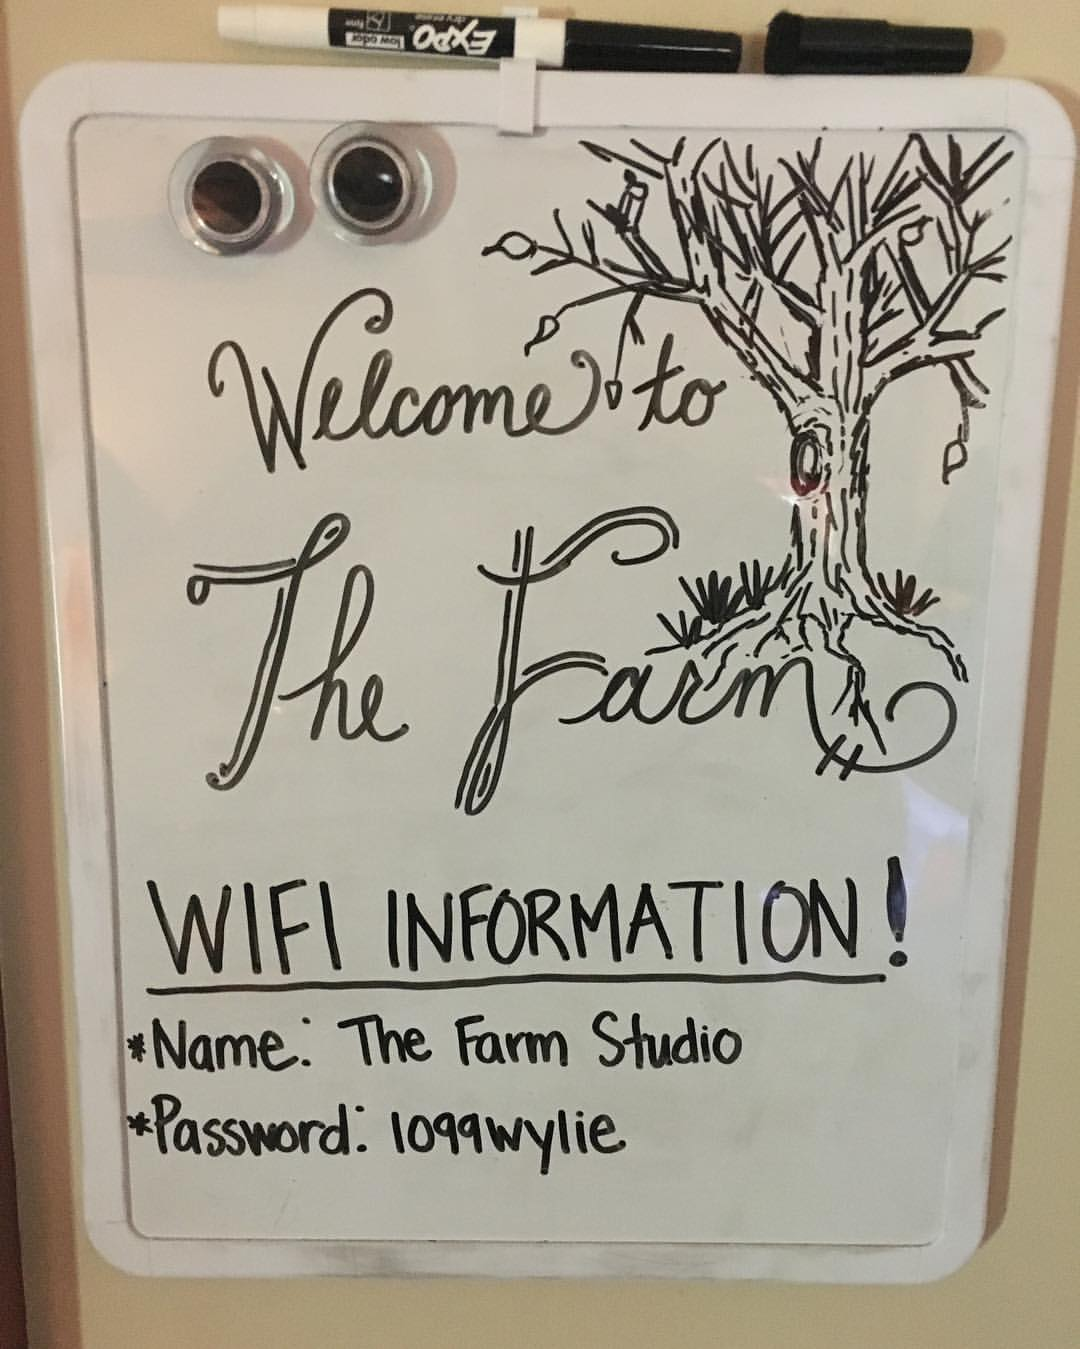 Woke up yesterday in Brick, NJ. Played a wedding last night in Amherst, MA. Woke up today in West Chester, PA. Getting ready to host @blasteroidband for the next two days - shoutout to @theannachiu for this decorative wifi information 🤘😎🤘